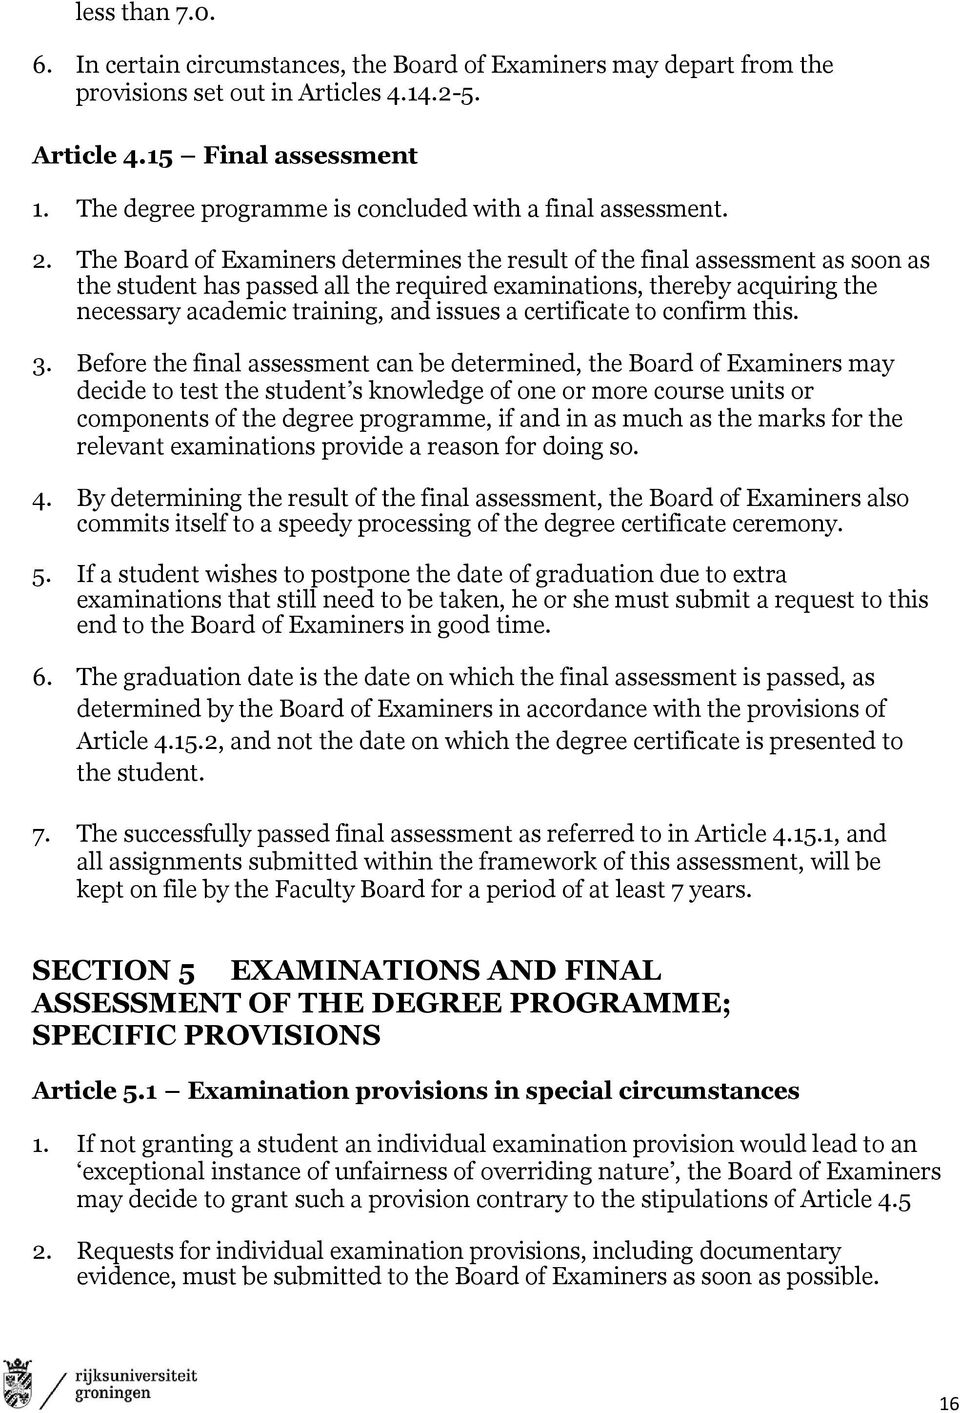 The Board of Examiners determines the result of the final assessment as soon as the student has passed all the required examinations, thereby acquiring the necessary academic training, and issues a